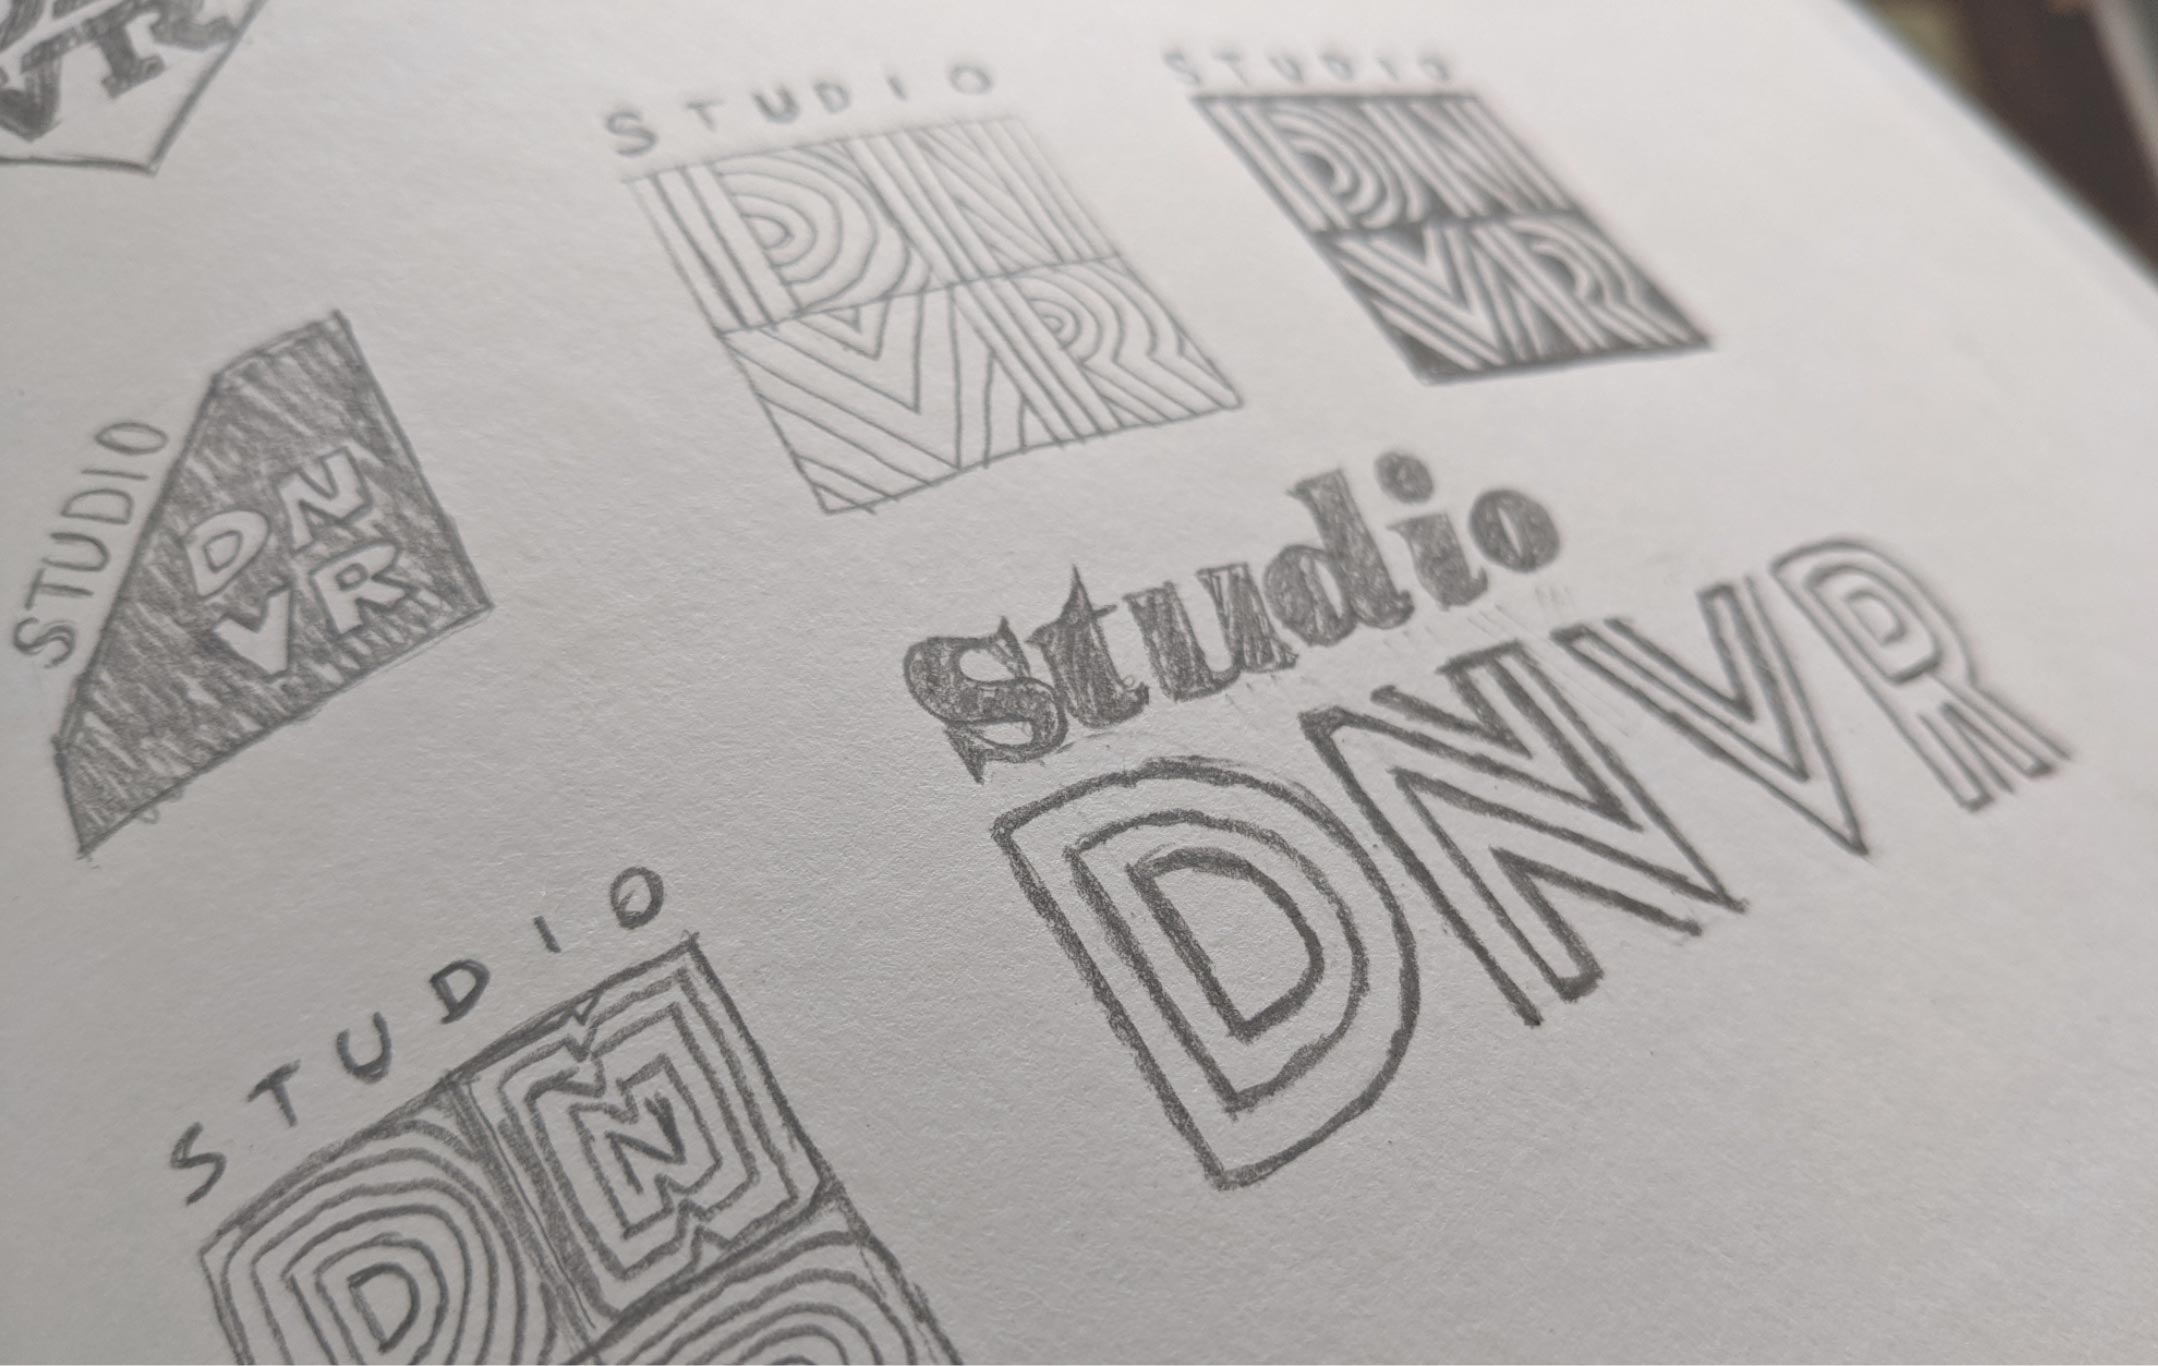 Sketches in a notebook of Studio DNVR logo concepts